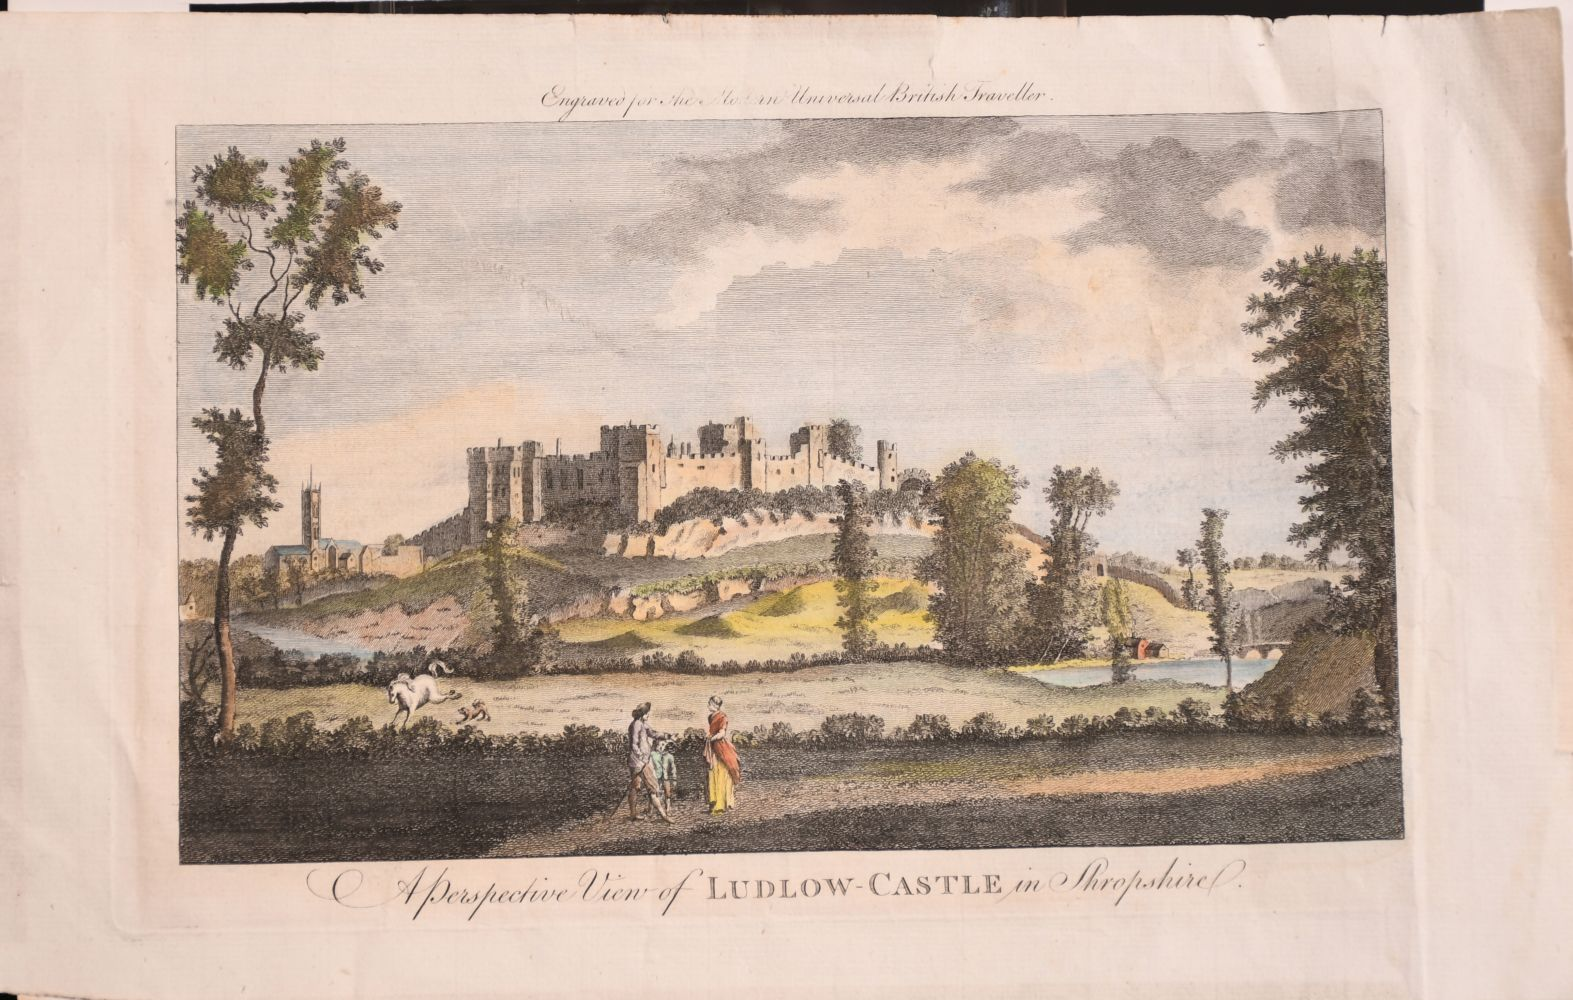 """A Perspective View of Ludlow Castle in Shropshire'. A Coloured Print, Unframed, 6"""" x 10.5"""". With - Image 2 of 6"""